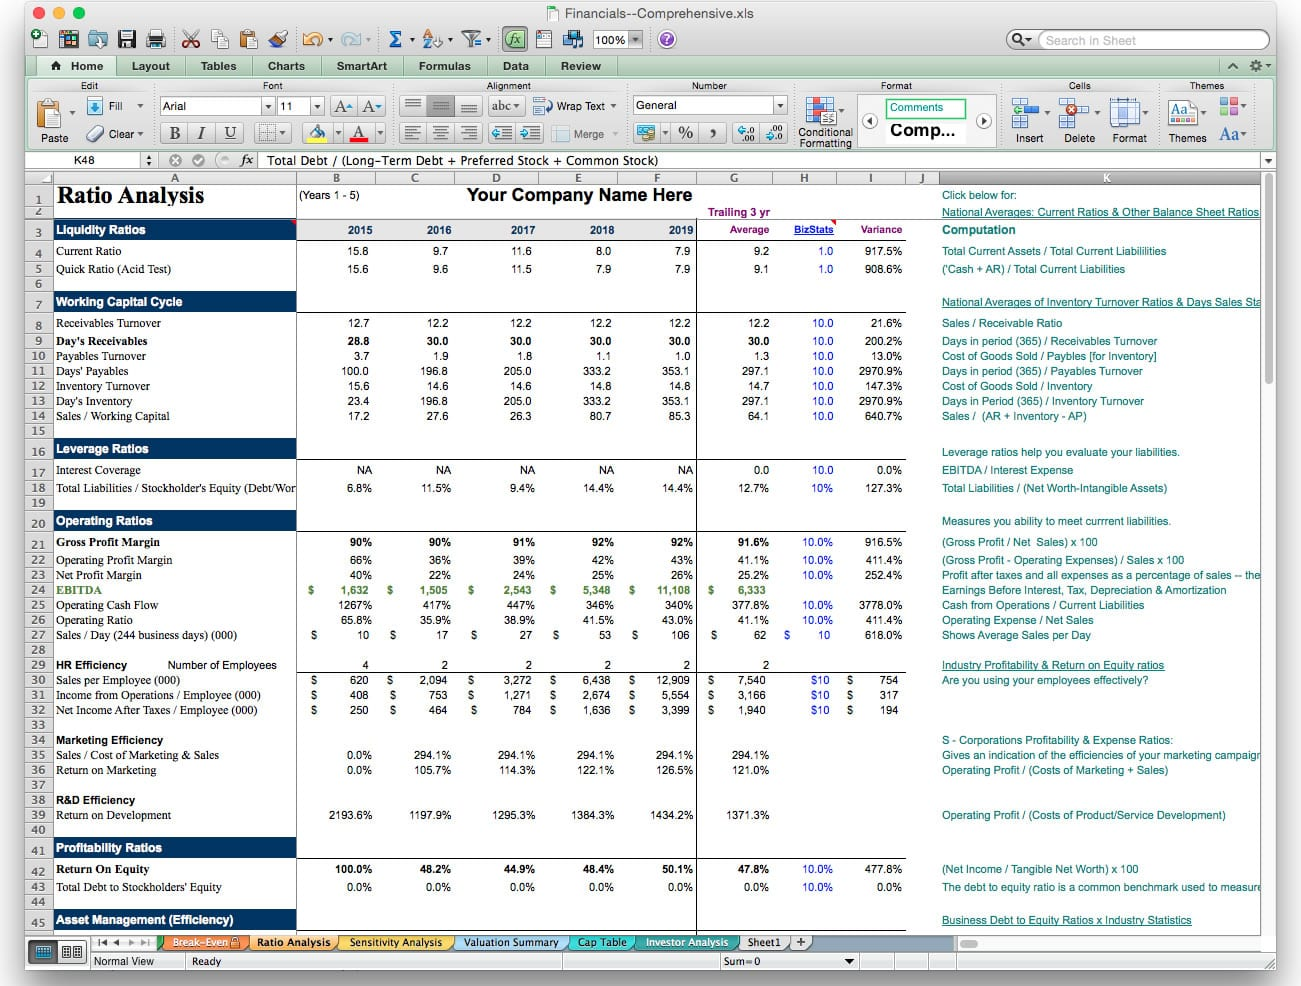 Financial Planning Excel Sheet Financial Plan Template Free Spreadsheet Templates for Busines Spreadsheet Templates for Busines Financial Planning Excel Template